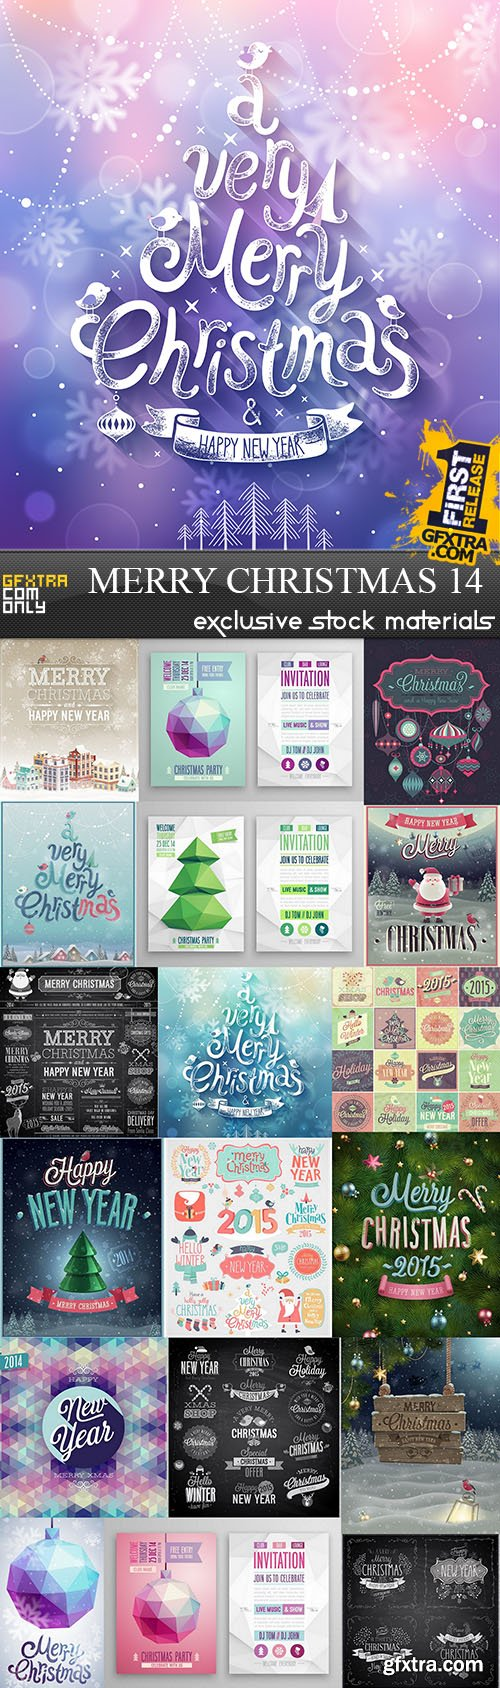 SS Merry Christmas 14, 25xEPS